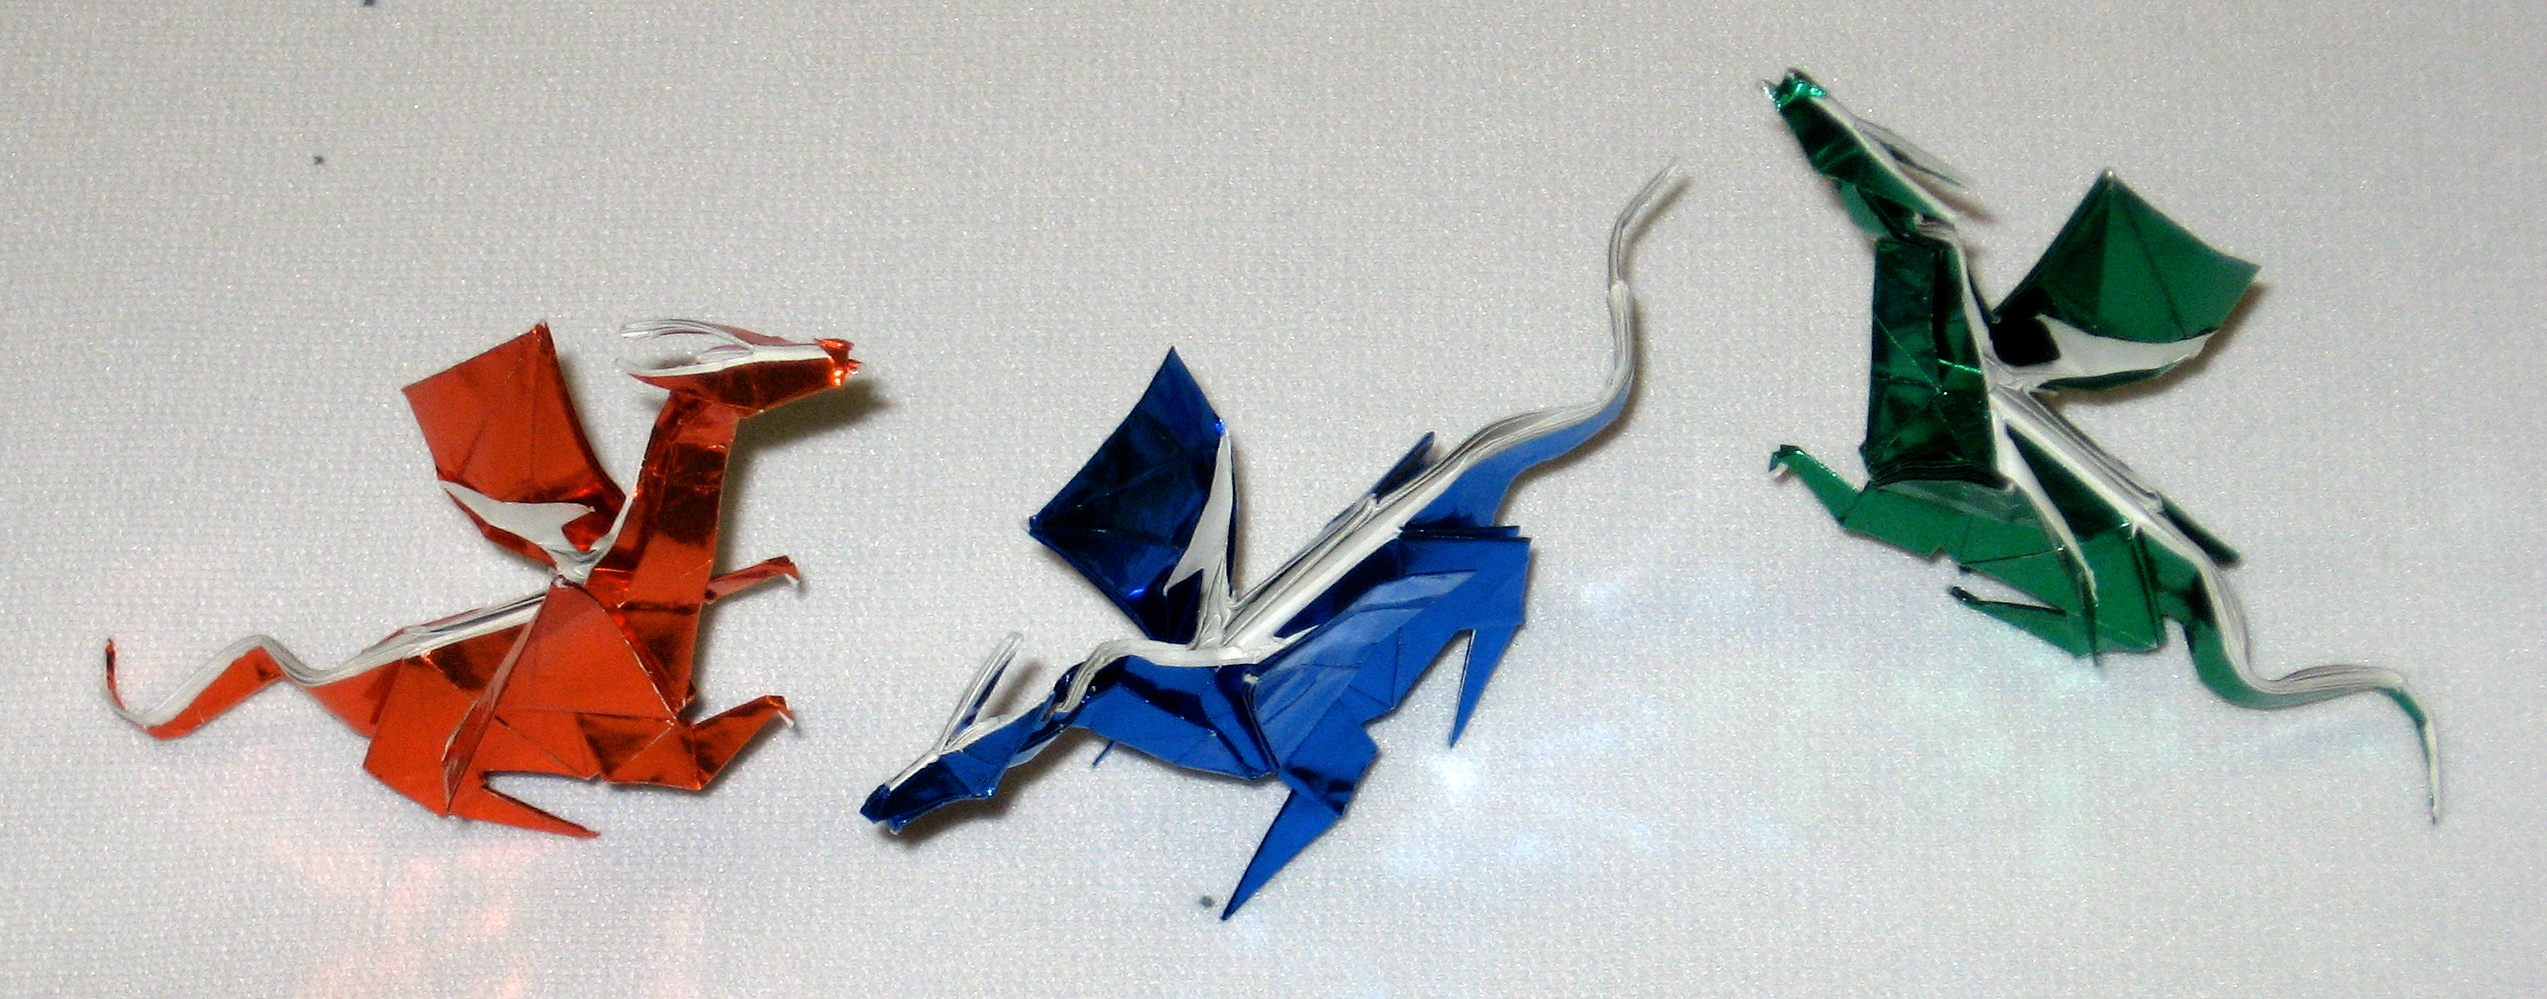 Origami Dragon | In Progress - photo#22